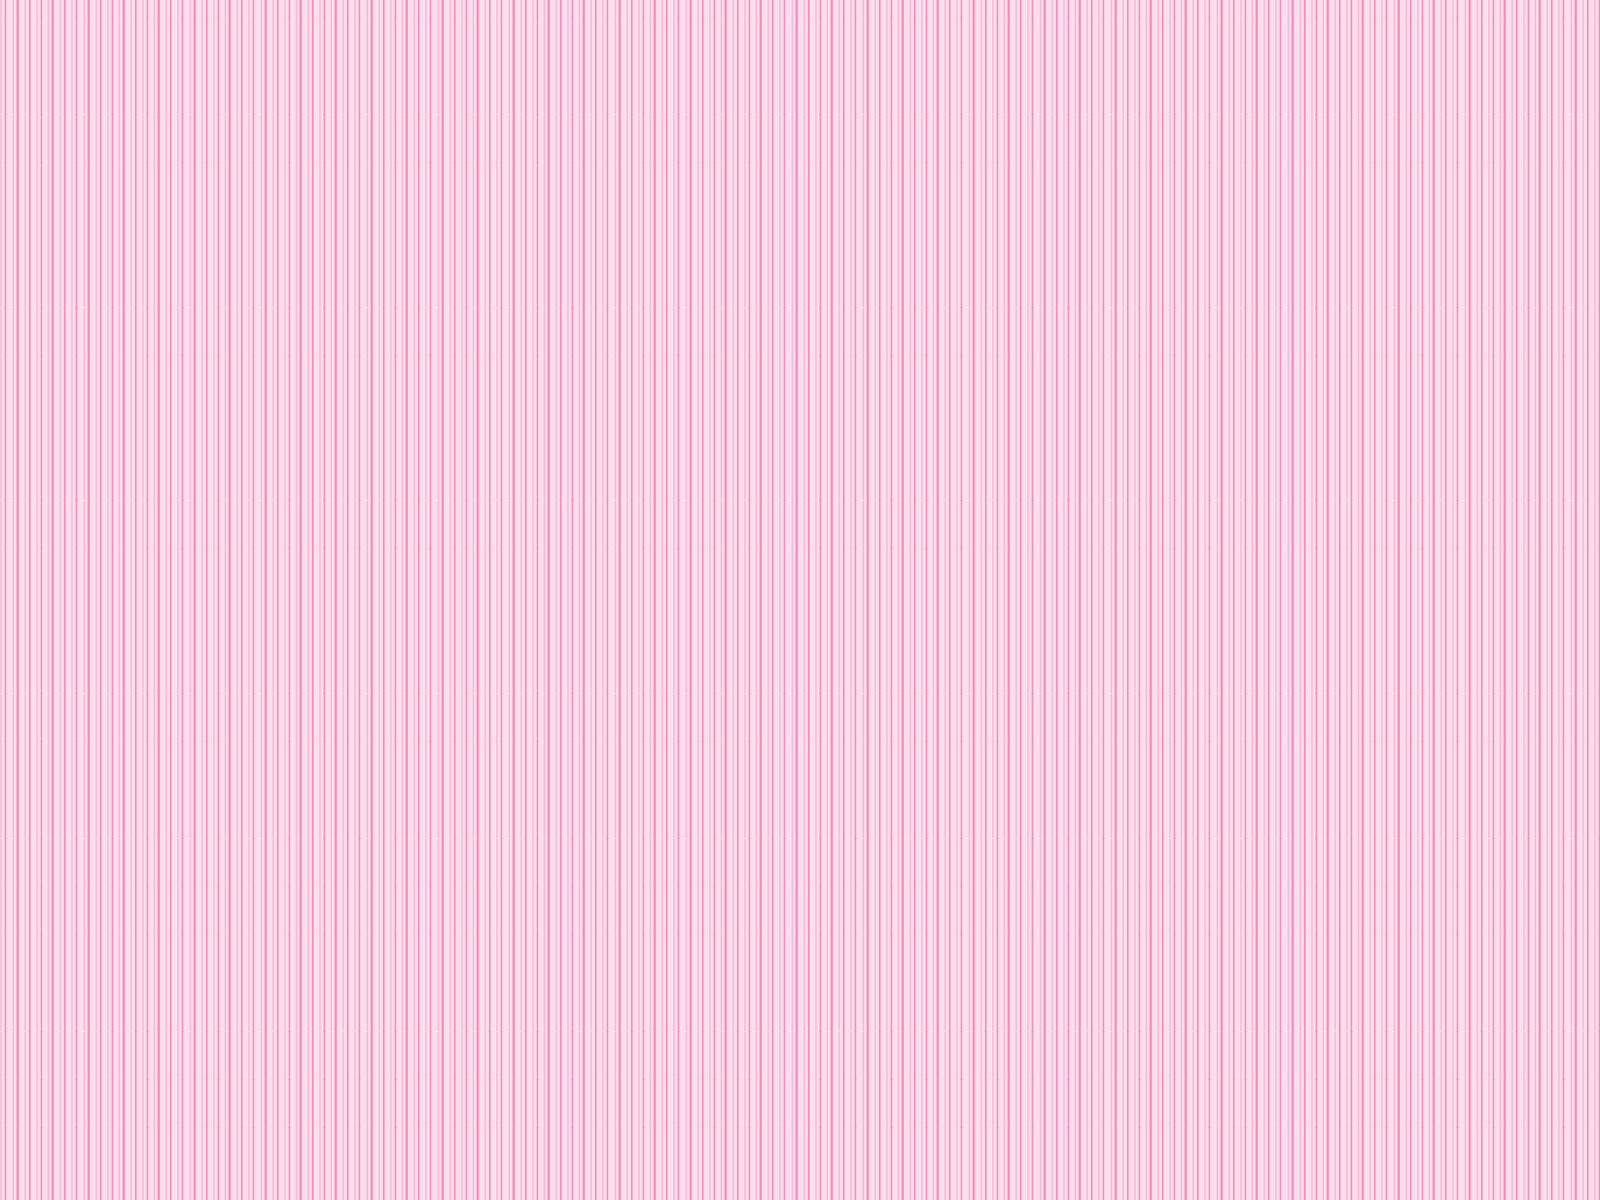 Valentines Striped Pattern Backgrounds